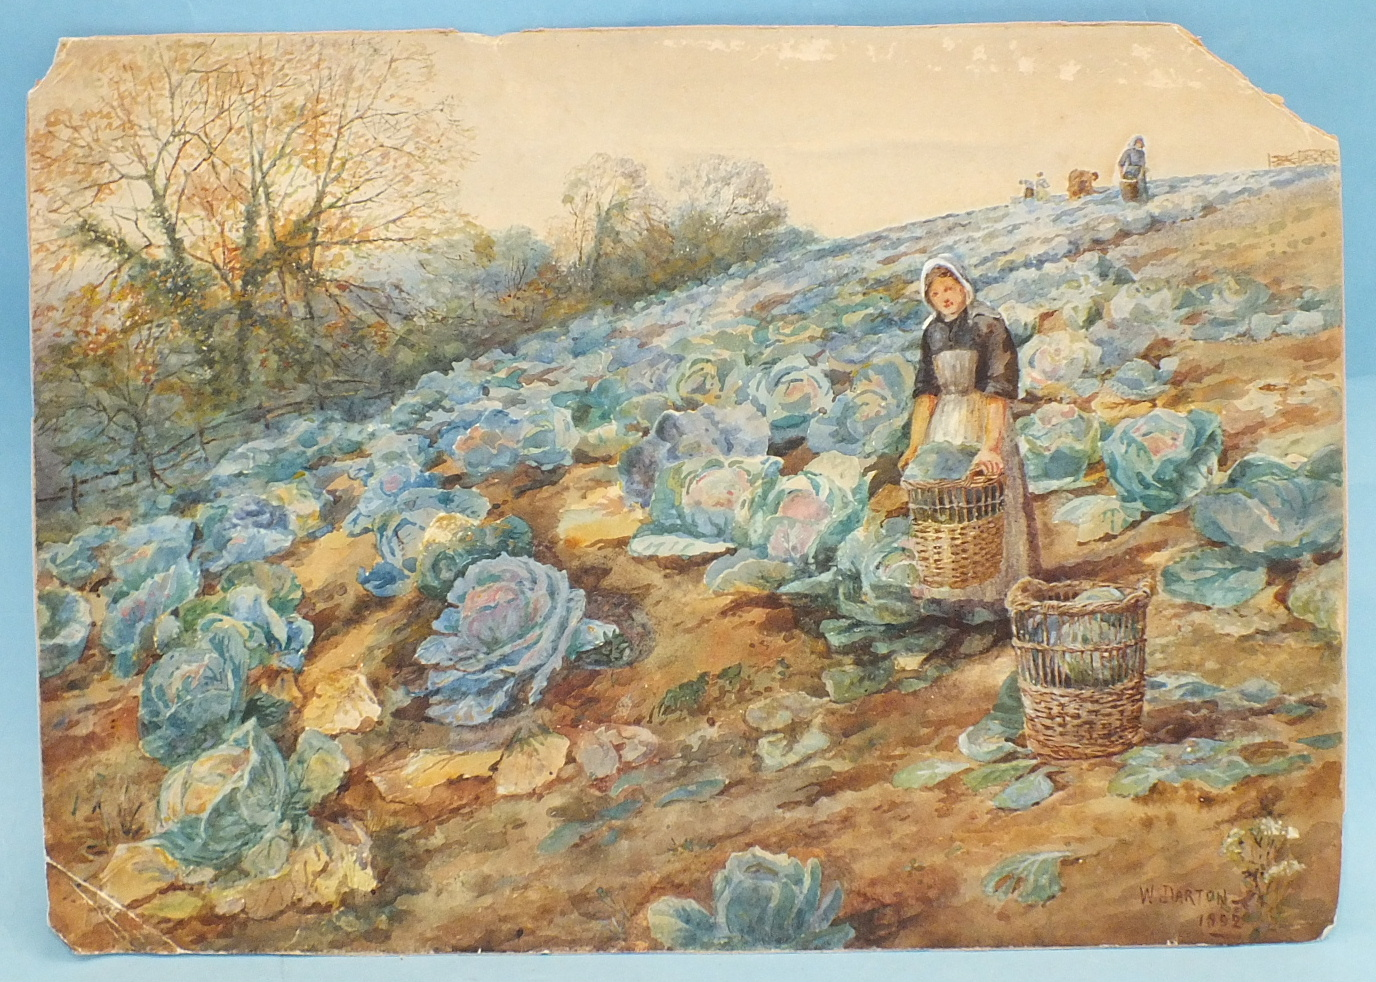 W Darton WOMEN GATHERING CABBAGES IN A FIELD Signed watercolour, dated 1892, unframed, damage to